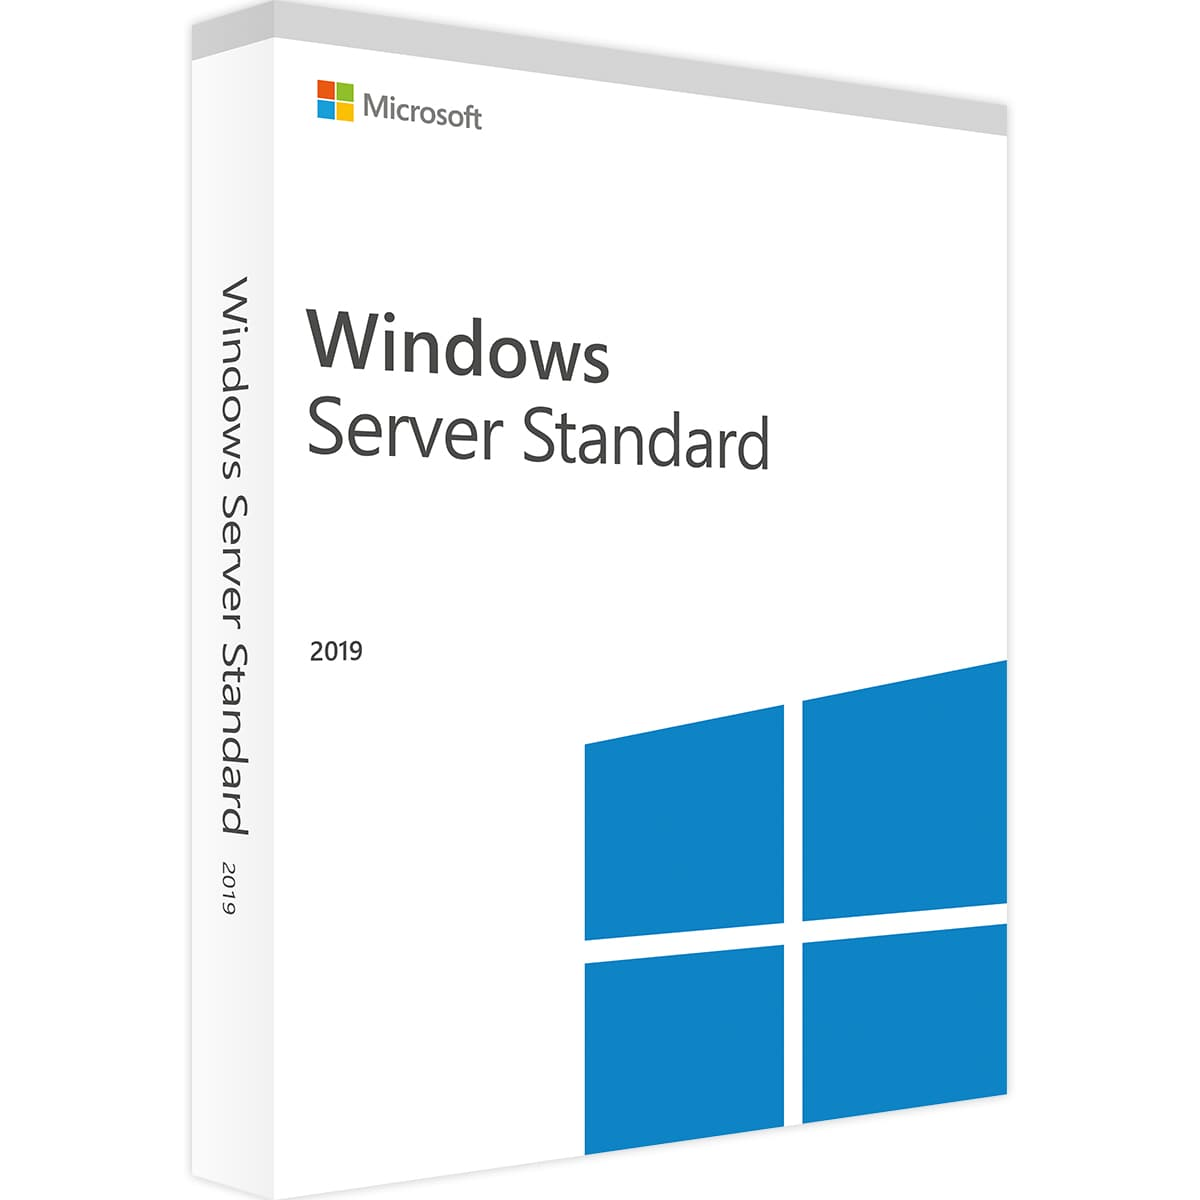 windows-server-2019-standard-min